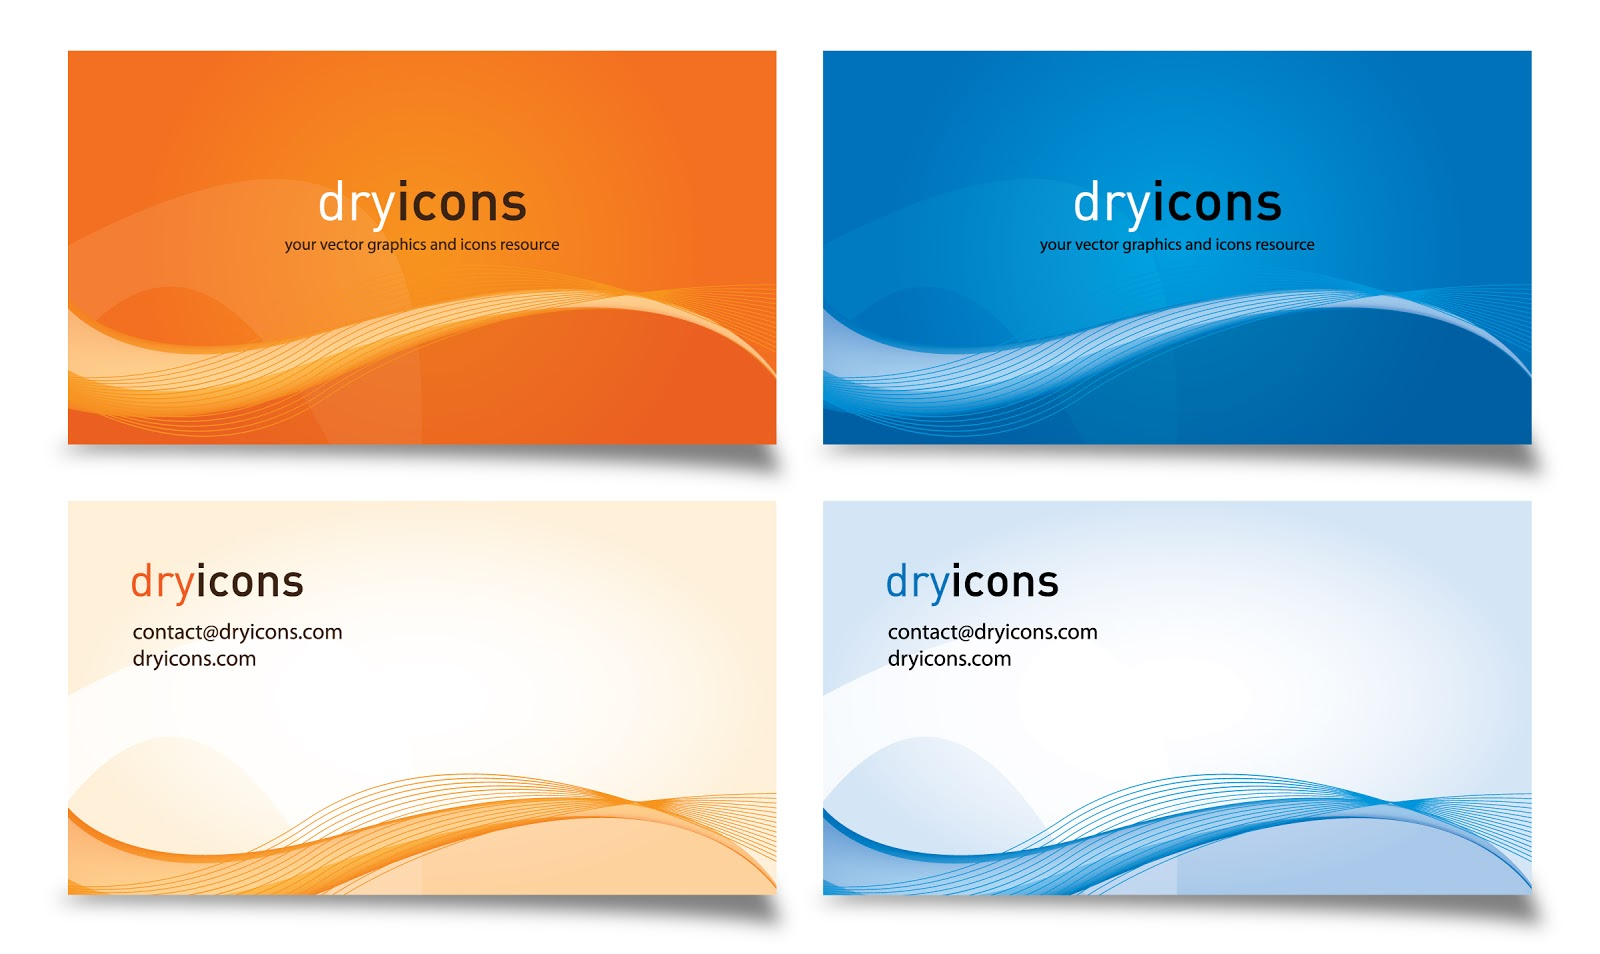 Laorejadevanhalen vector stylish vector business cards set of four stylish vector business card designs templates in blue orange and white colors fbccfo Images